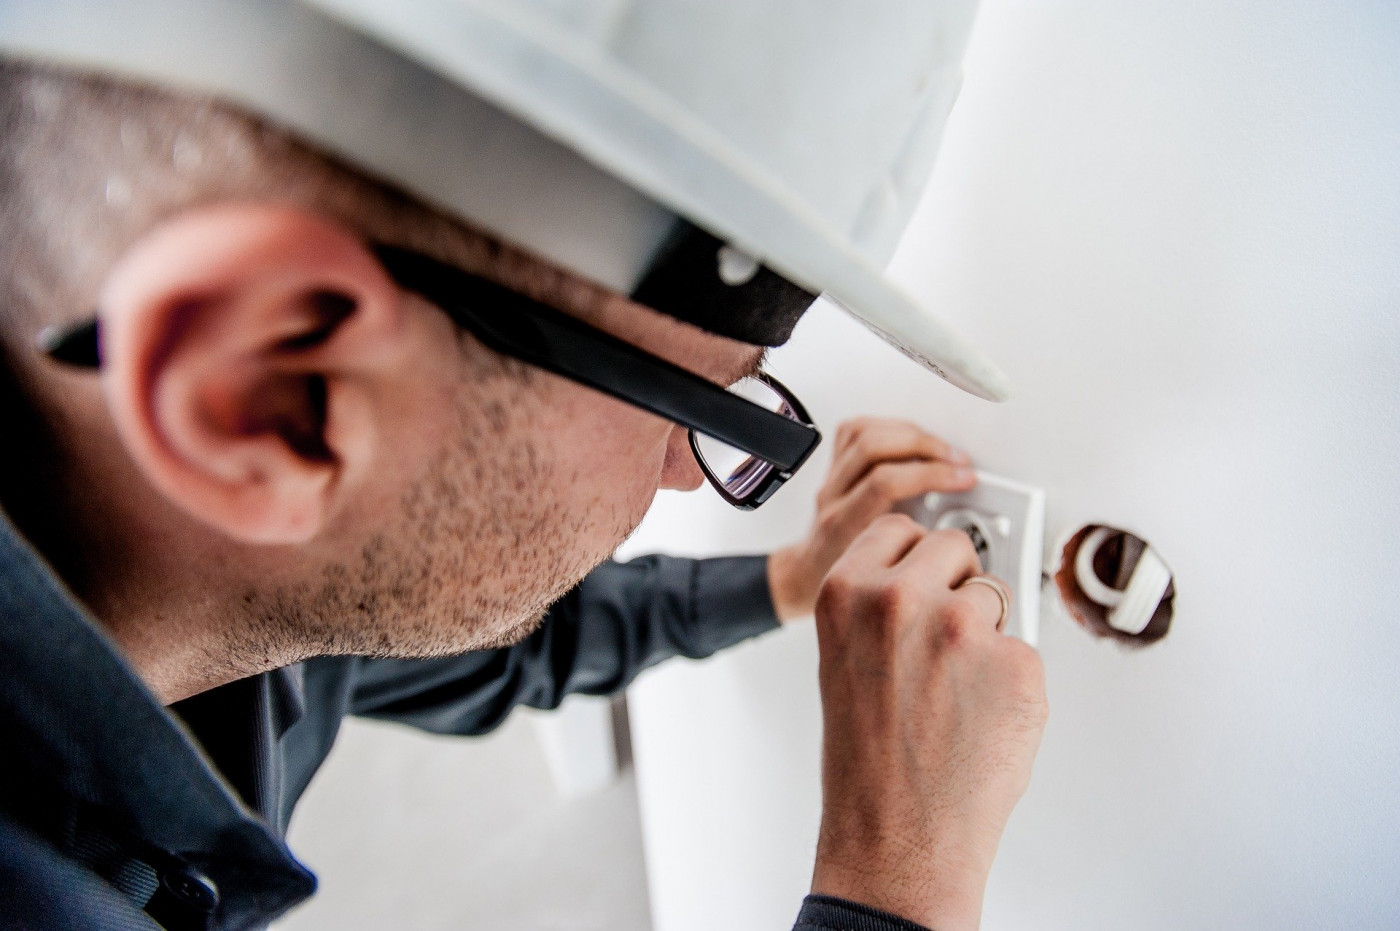 When Do You Need to Hire an Electrician?